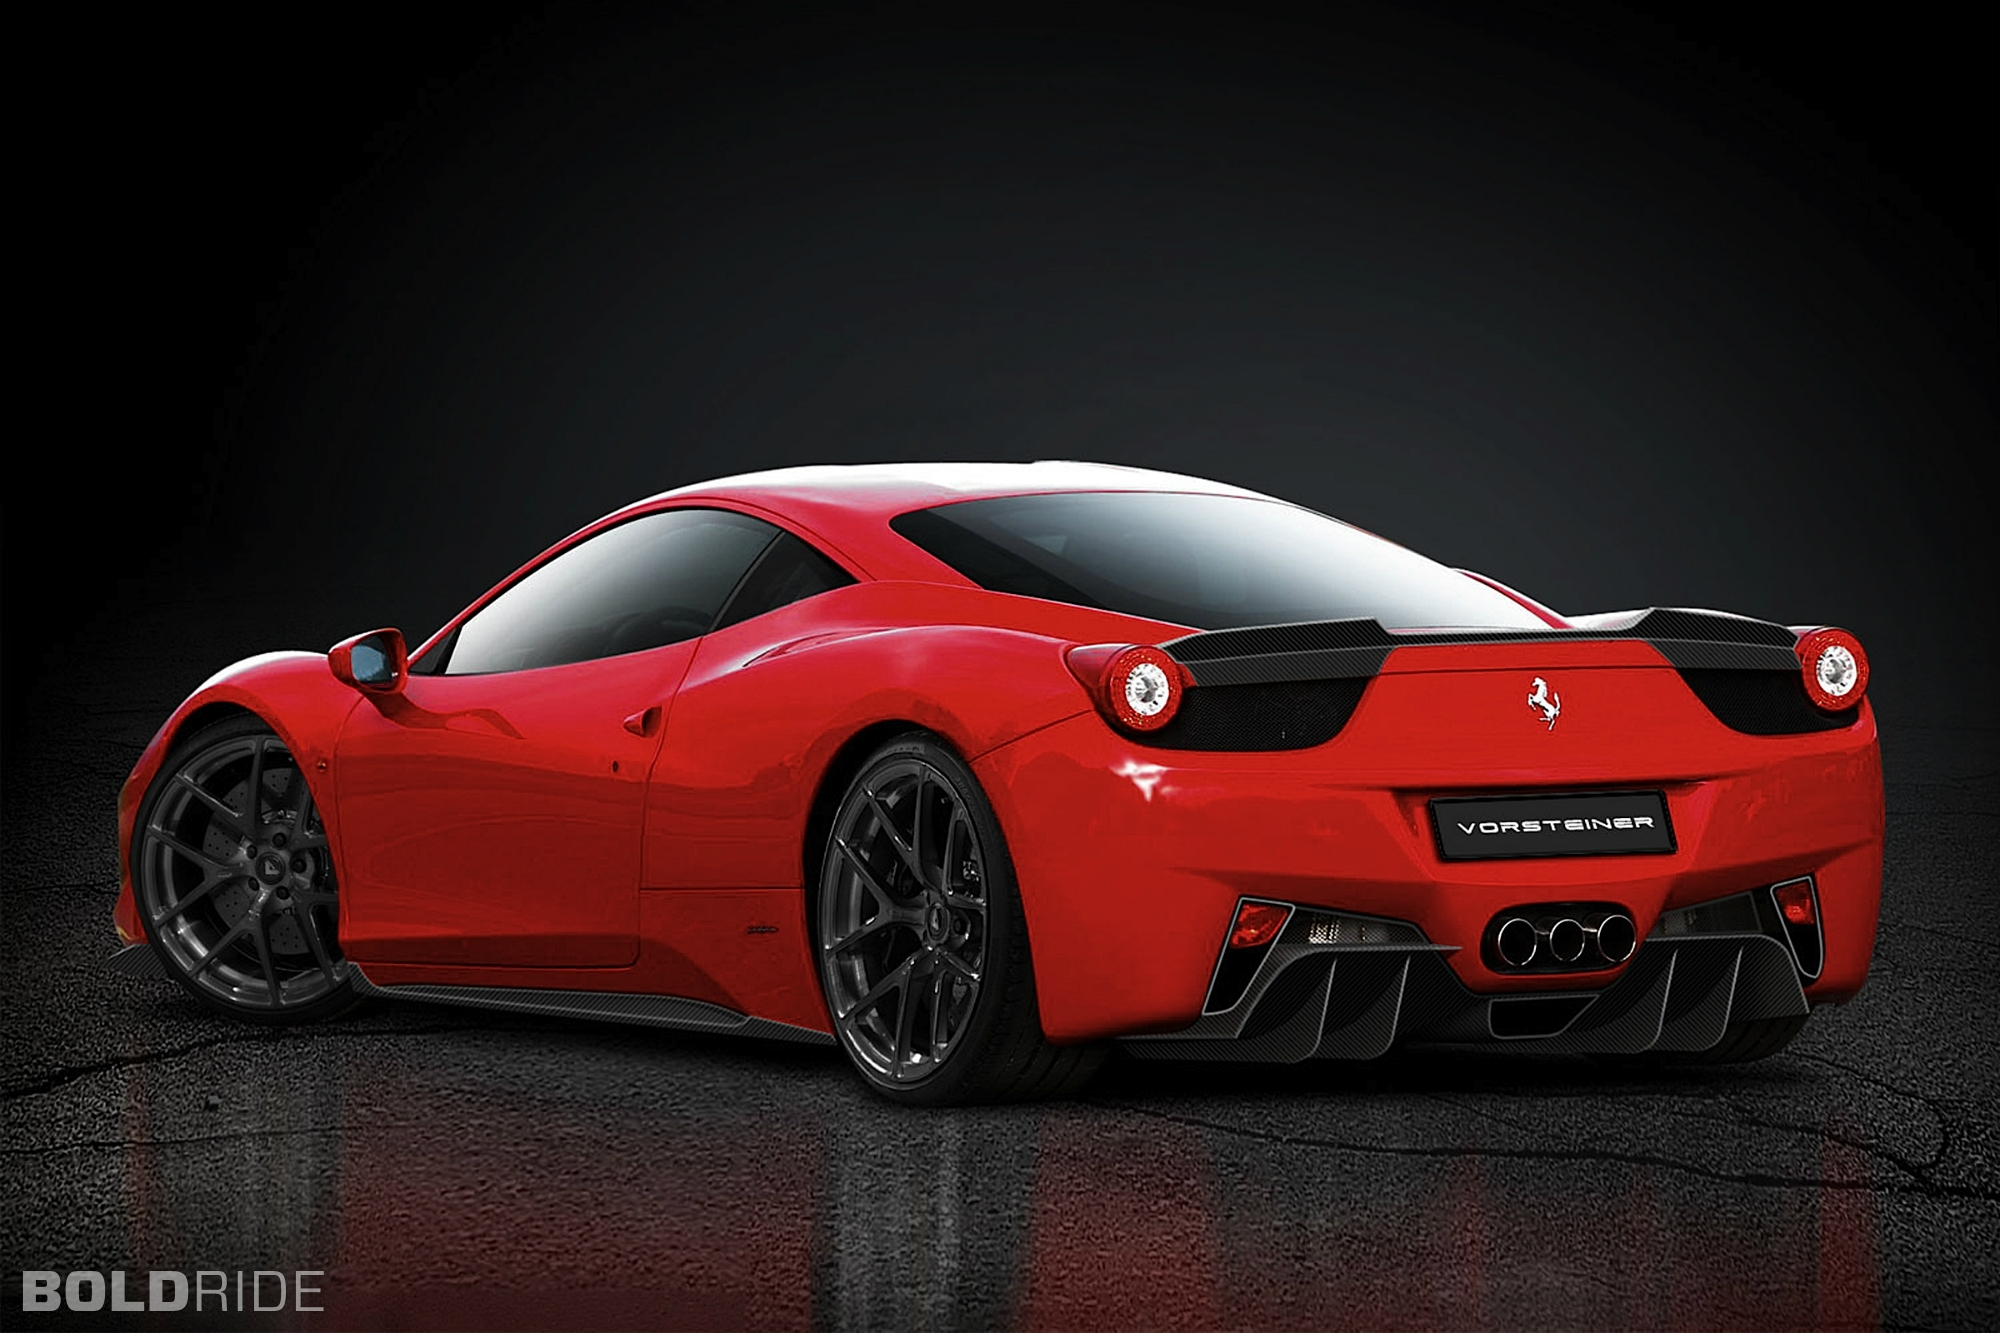 ferrari 2012 ferrari 458 italia 2012 ferrari 458 italia image 21. Cars Review. Best American Auto & Cars Review